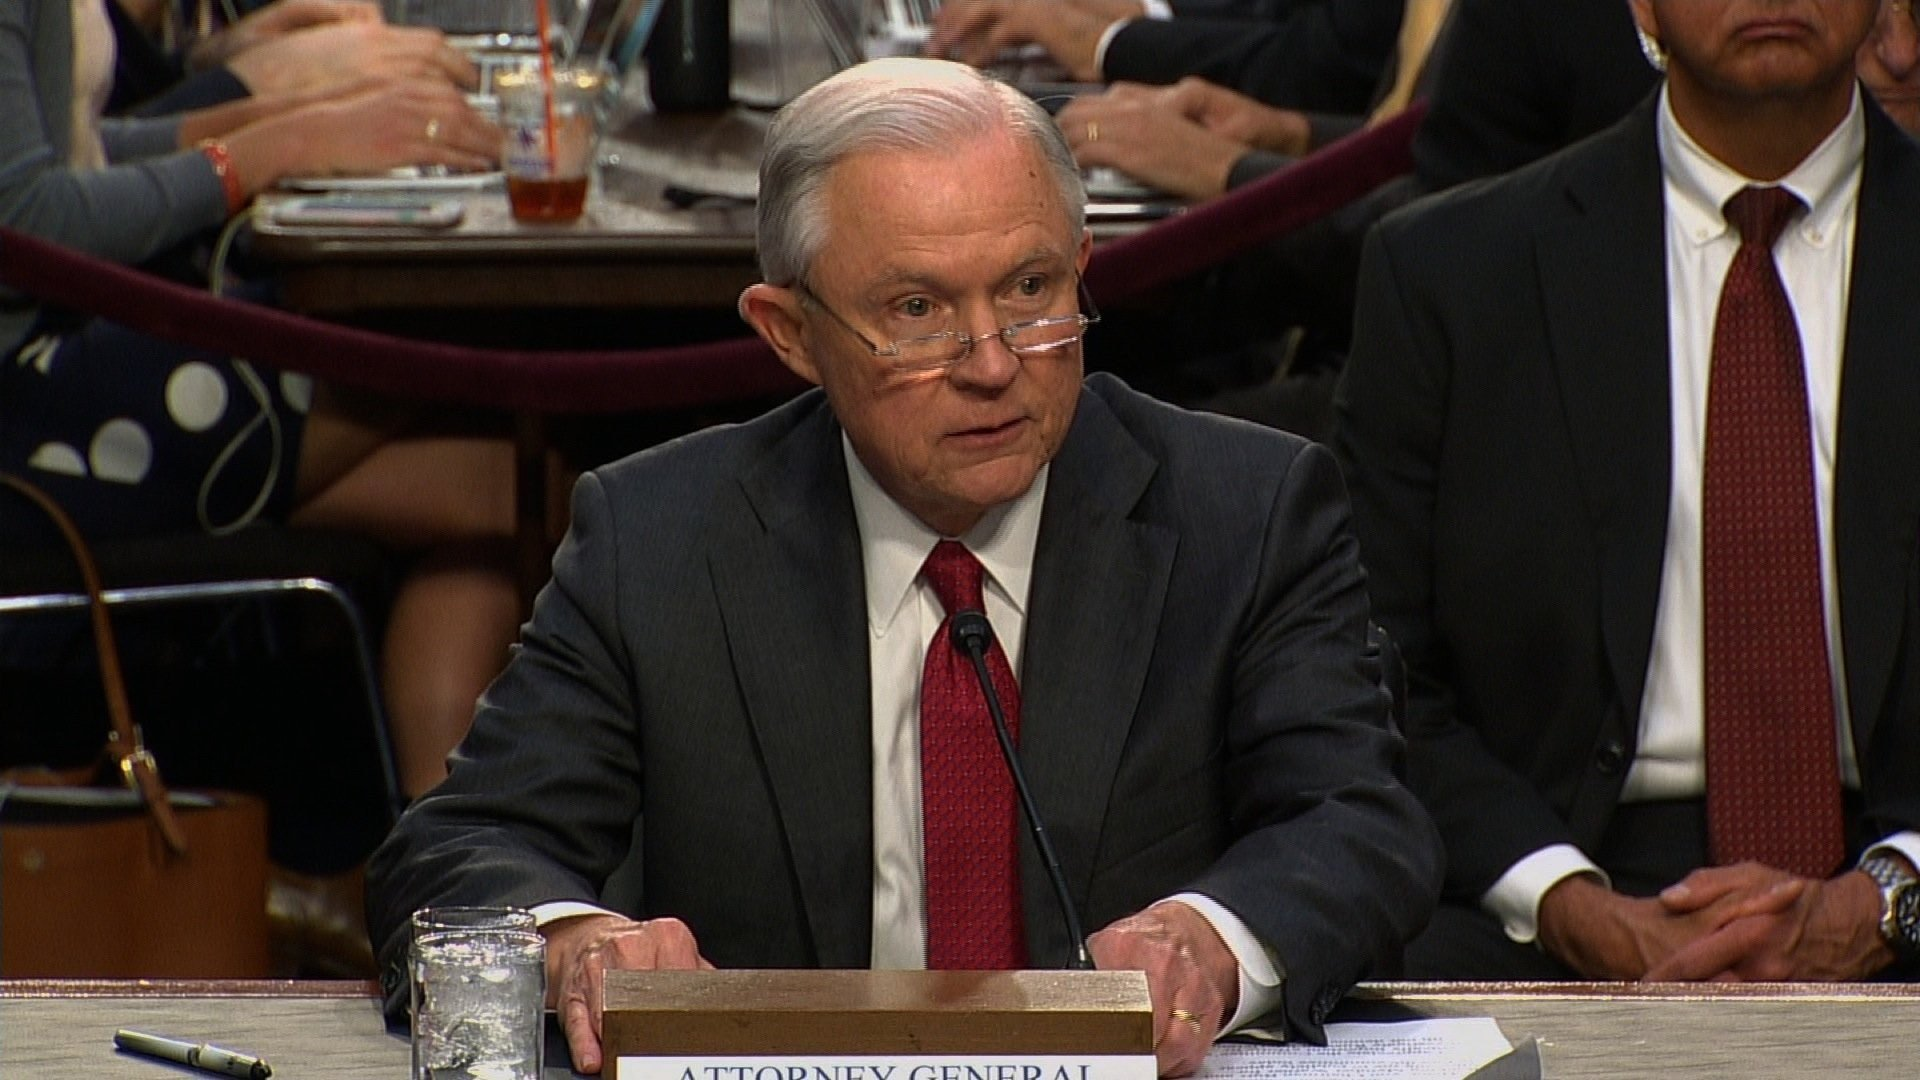 Sessions: Free speech under attack by political correctness